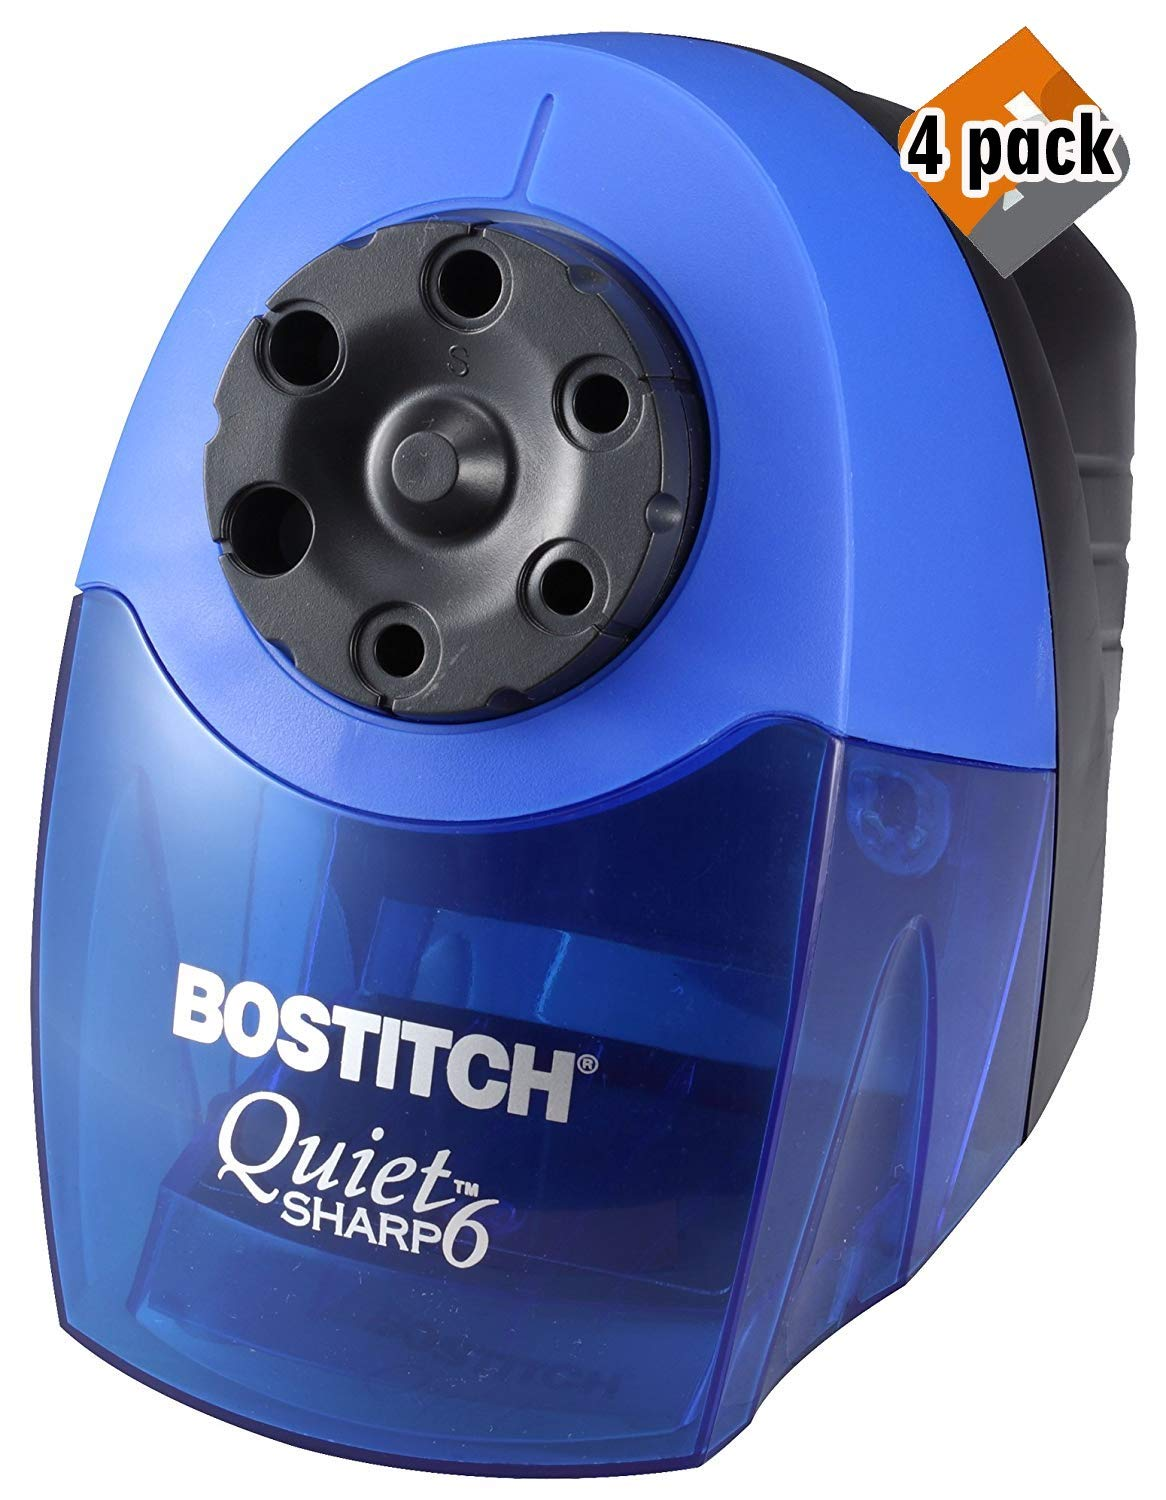 Bostitch QuietSharp 6 Heavy Duty Classroom Electric Pencil Sharpener, 6-Holes, Blue (EPS10HC) 4 Pack by Bostitch Office